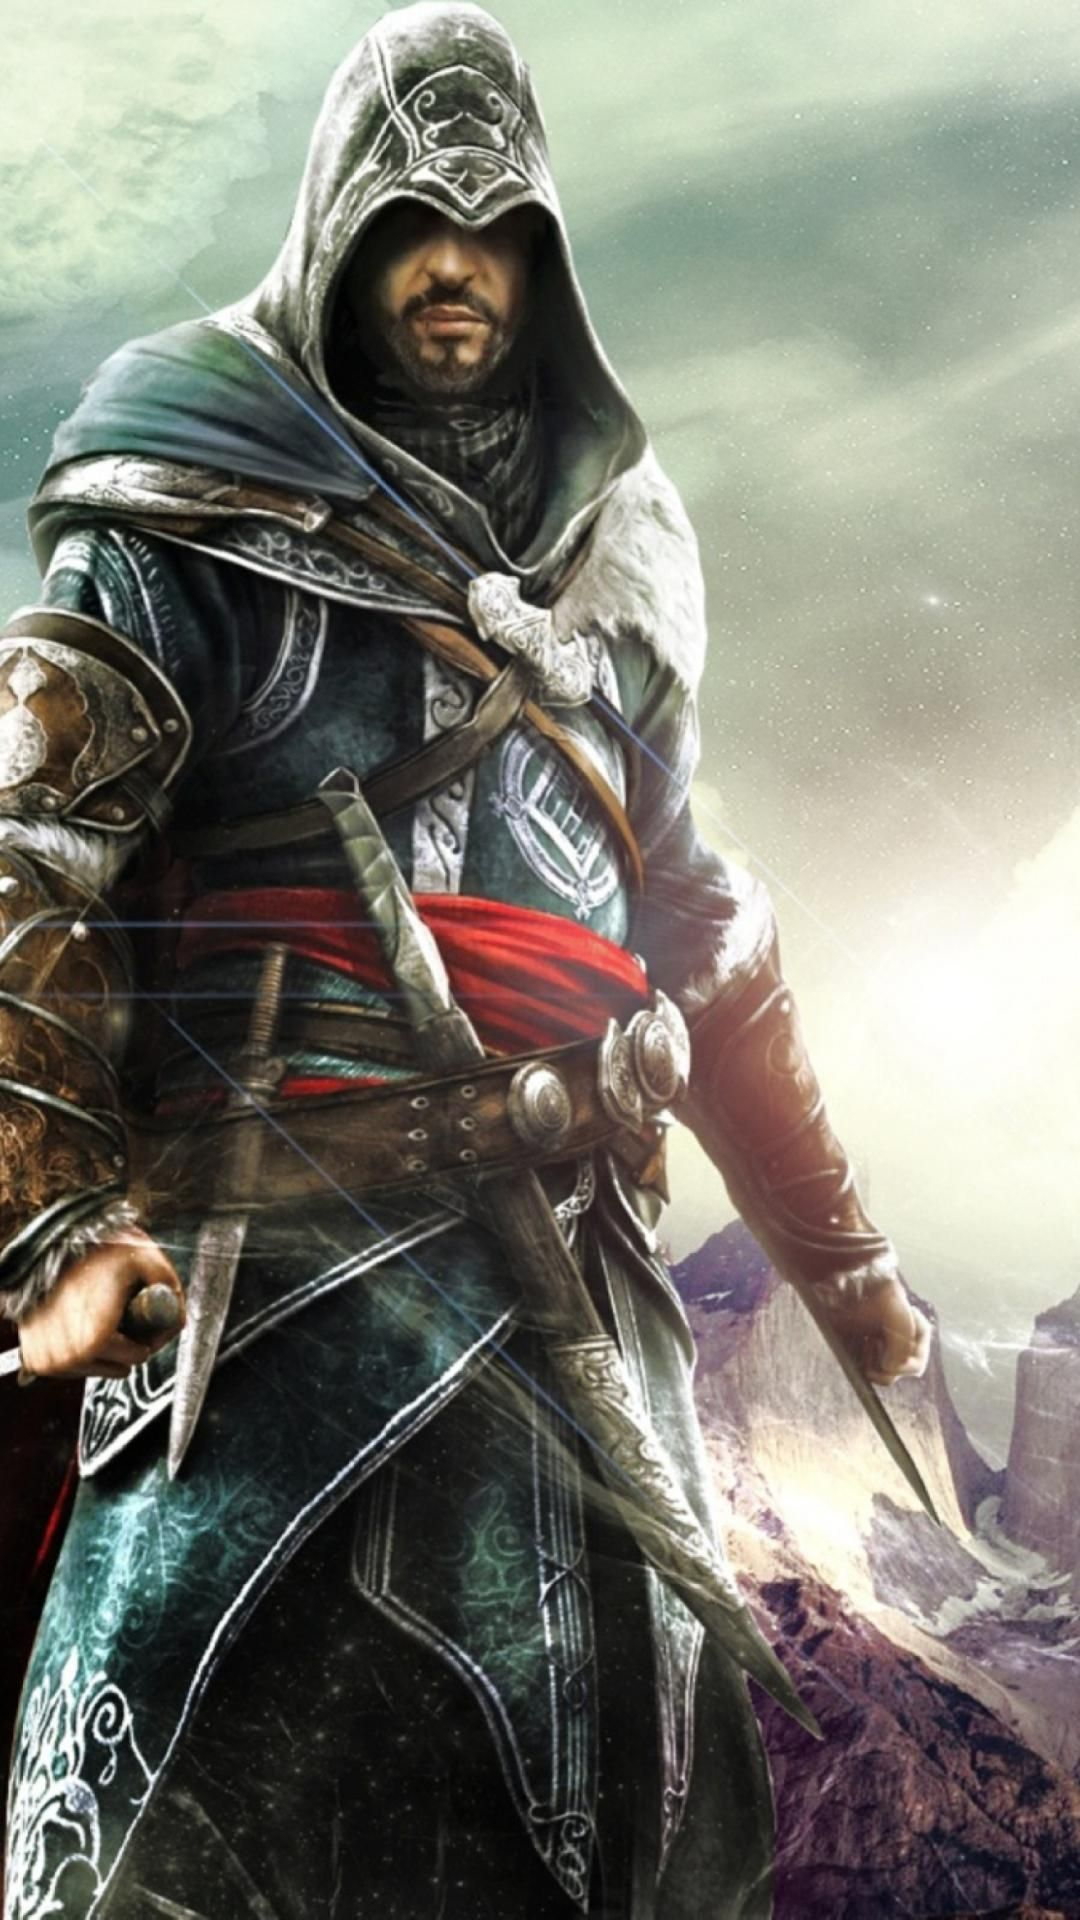 Assassin S Creed Iphone Background In 2020 Assassin S Creed